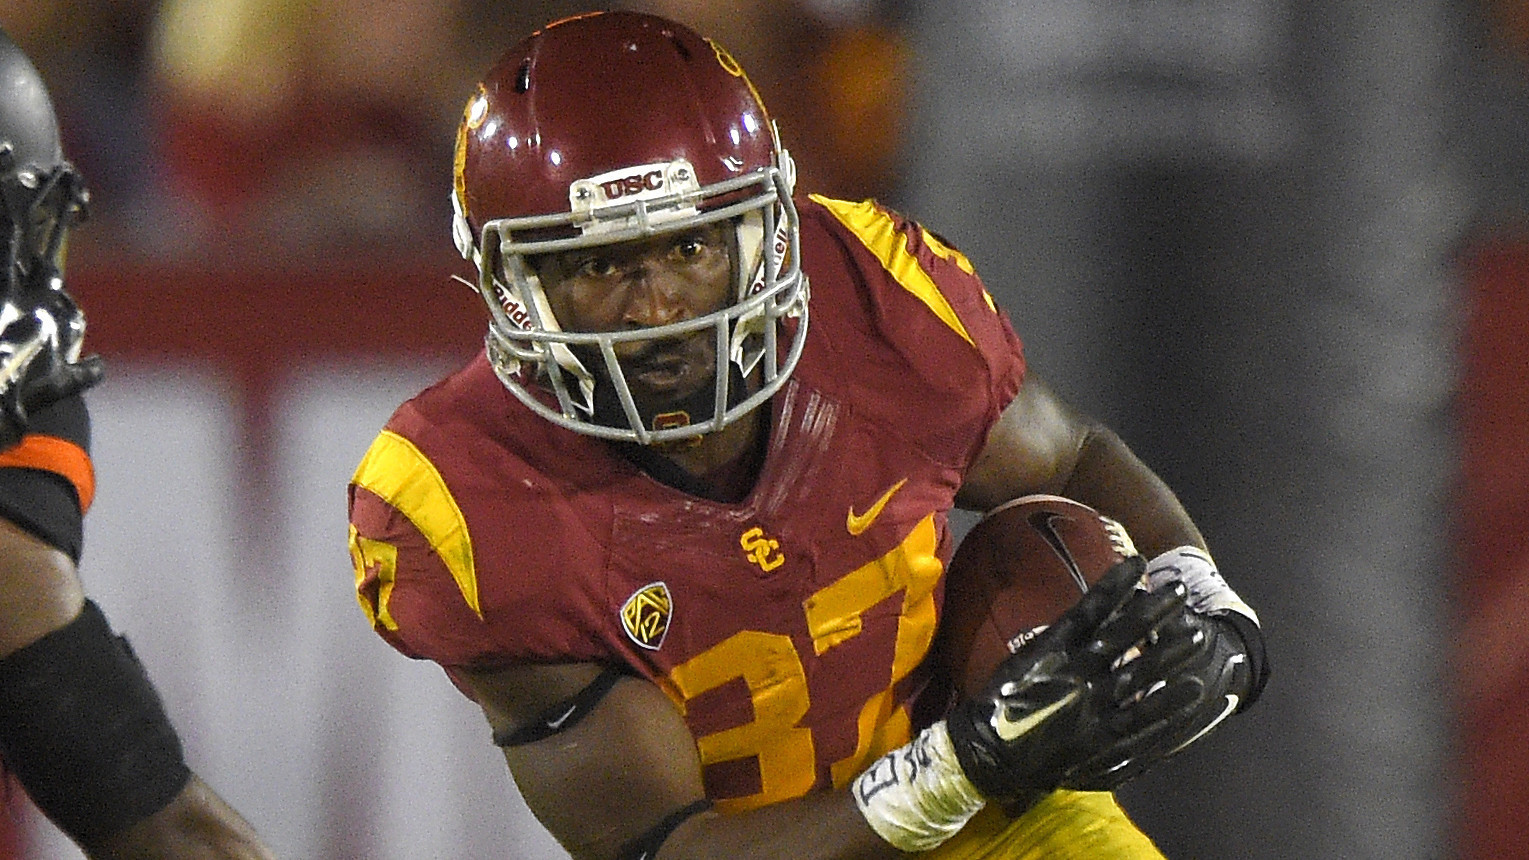 Trojans feeling a whole lot better rushing into next game